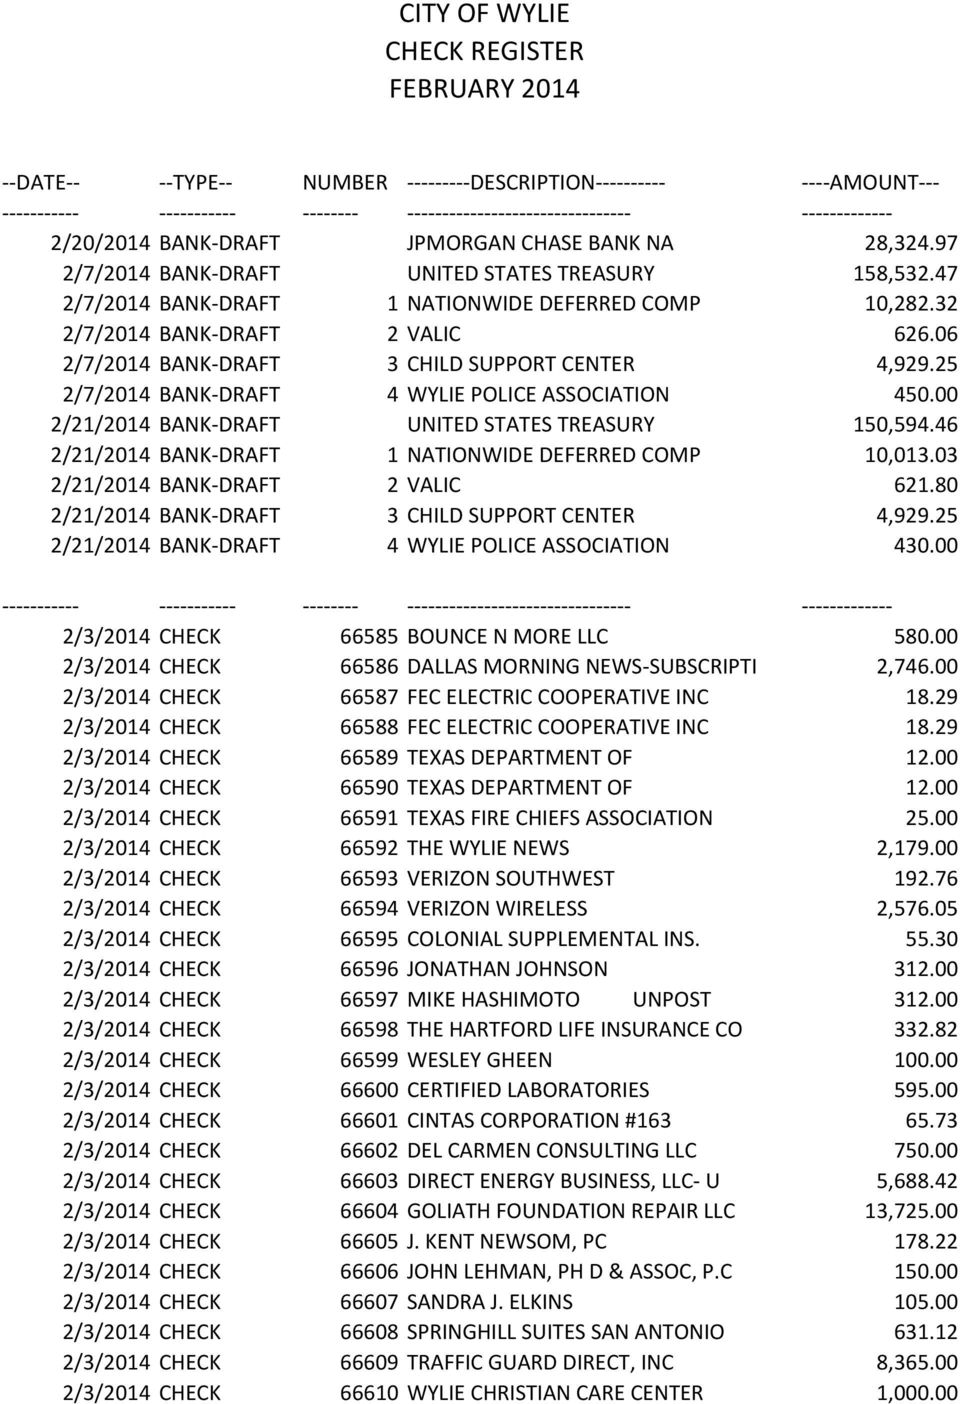 46 2/21/2014 BANK-DRAFT 1 NATIONWIDE DEFERRED COMP 10,013.03 2/21/2014 BANK-DRAFT 2 VALIC 621.80 2/21/2014 BANK-DRAFT 3 CHILD SUPPORT CENTER 4,929.